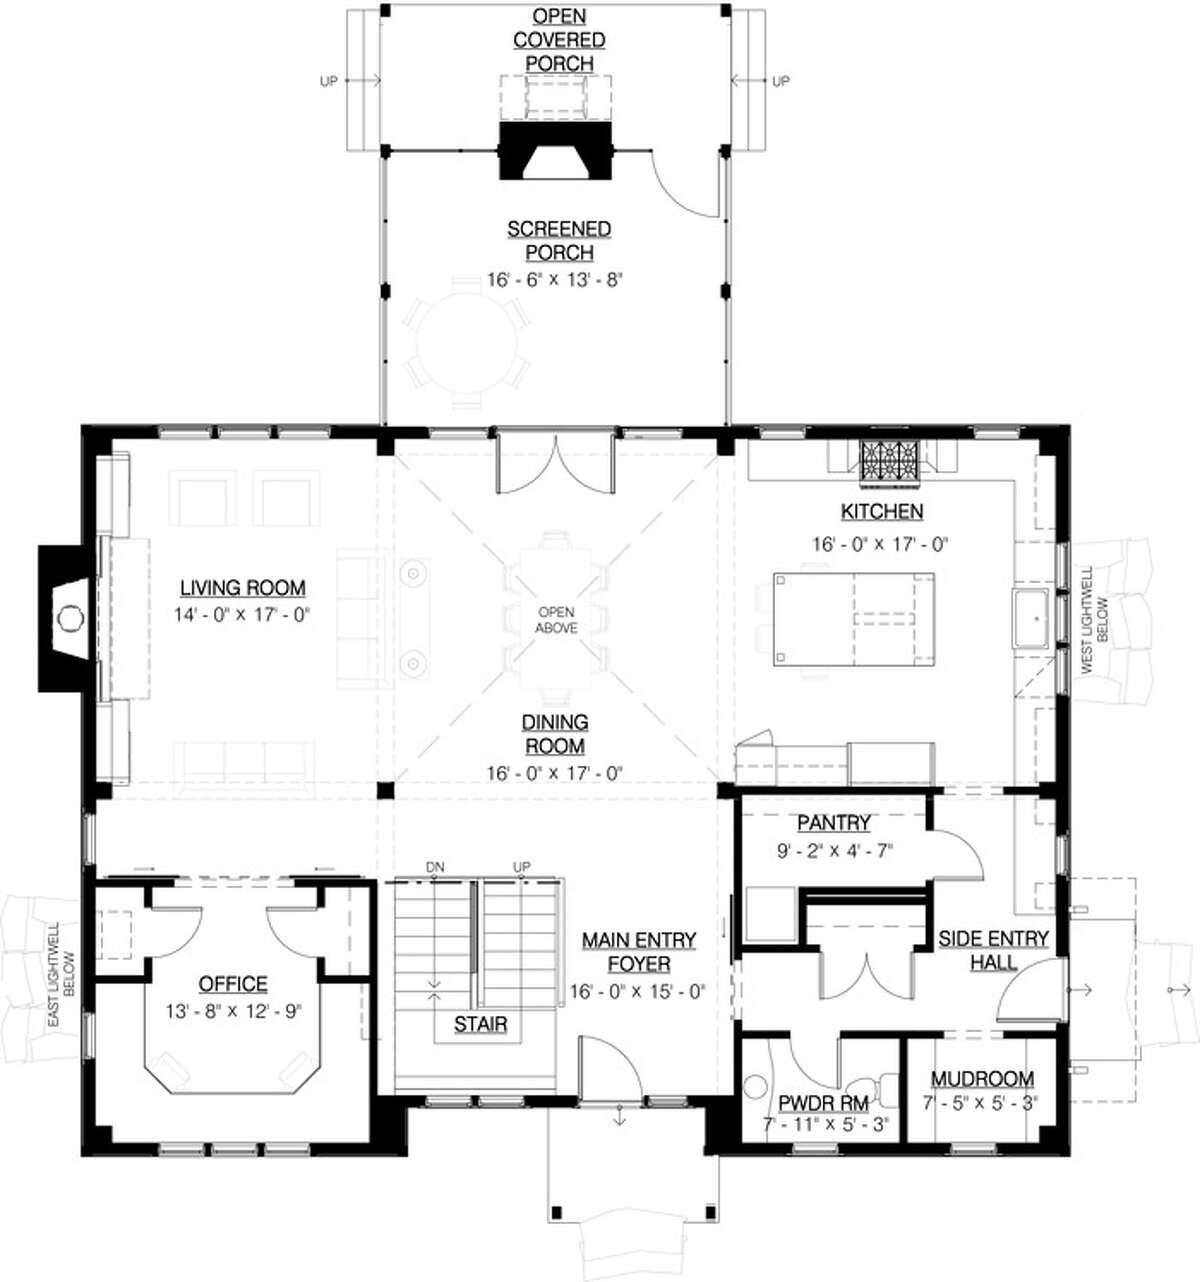 A floorplan of what the house will look like when it's finished this month.